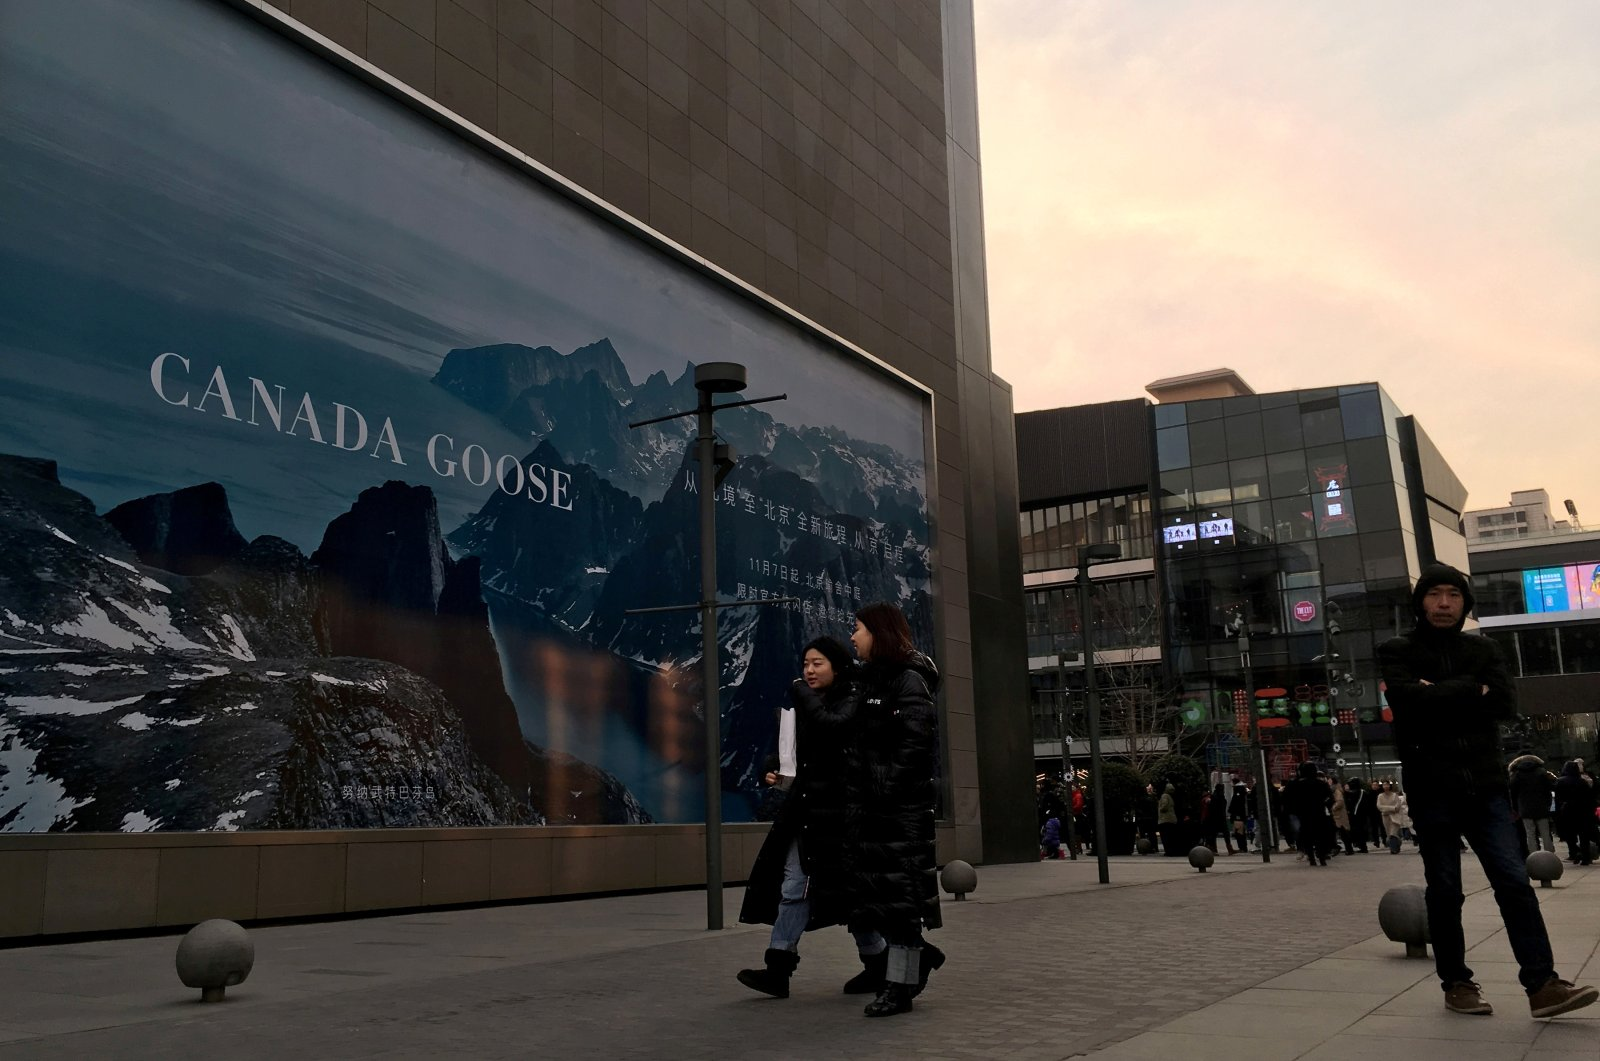 People walk past an advertisement near the flagship store of Canadian luxury parka maker Canada Goose in Sanlitun, Beijing, China, Dec. 31, 2018. (Reuters Photo)